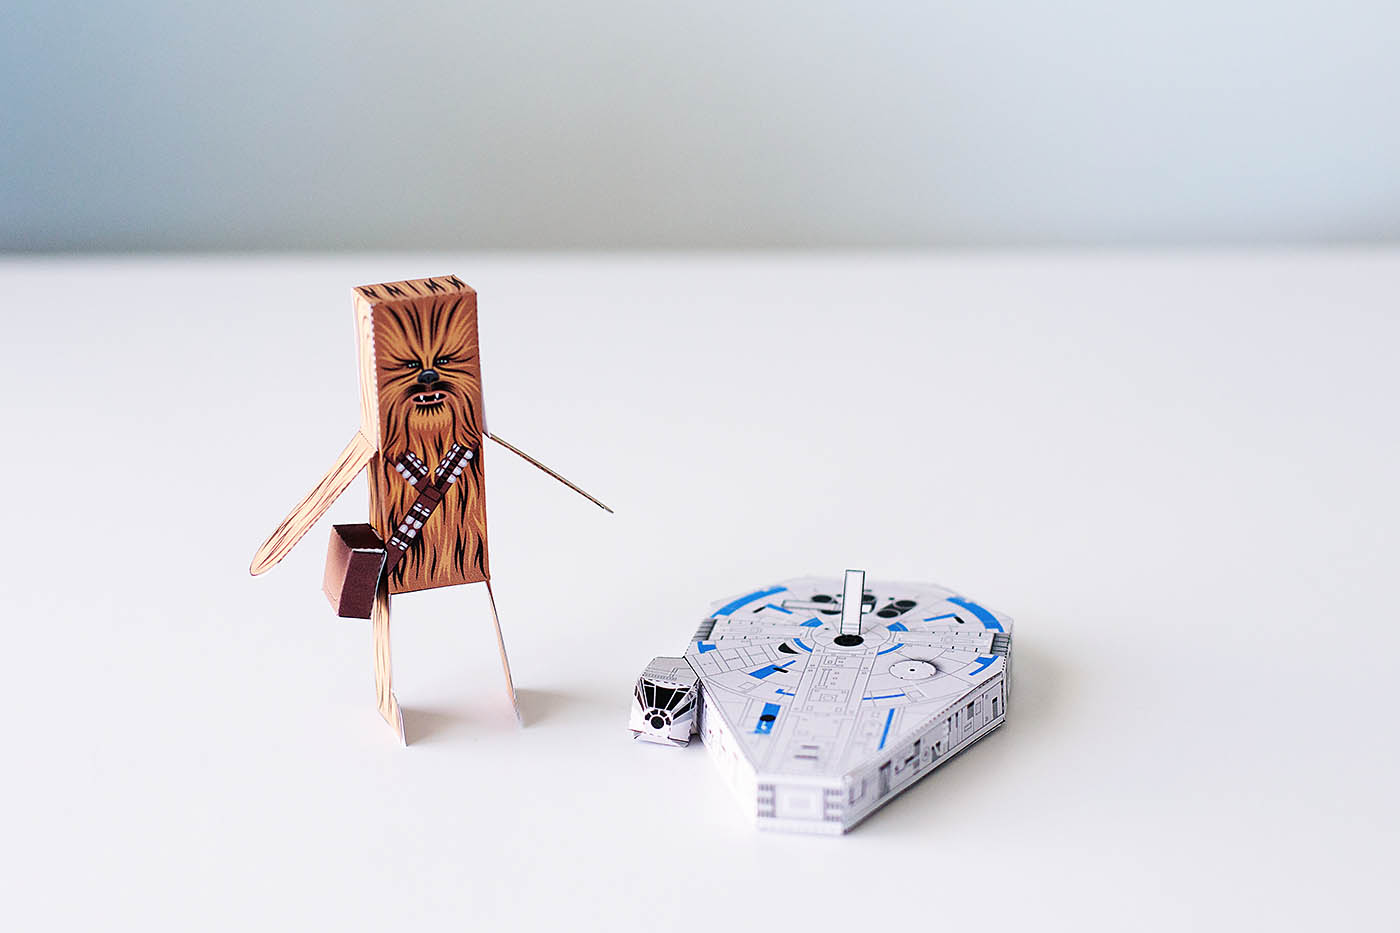 photograph regarding Star Wars Printable Crafts identify Observe Solo: A Star Wars Tale at Residence + Cost-free Chewbacca